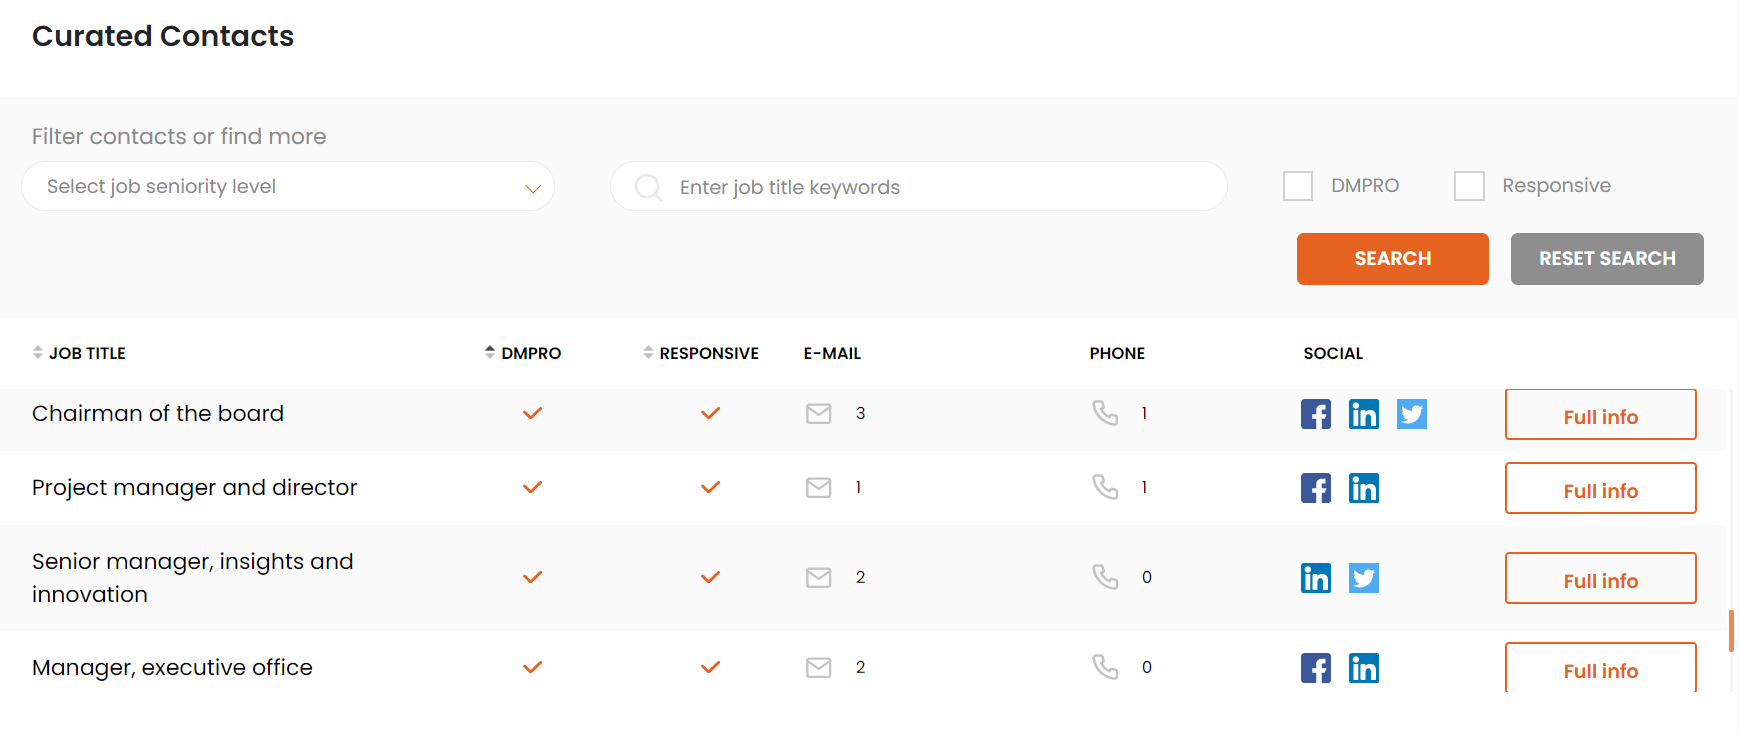 curated contacts